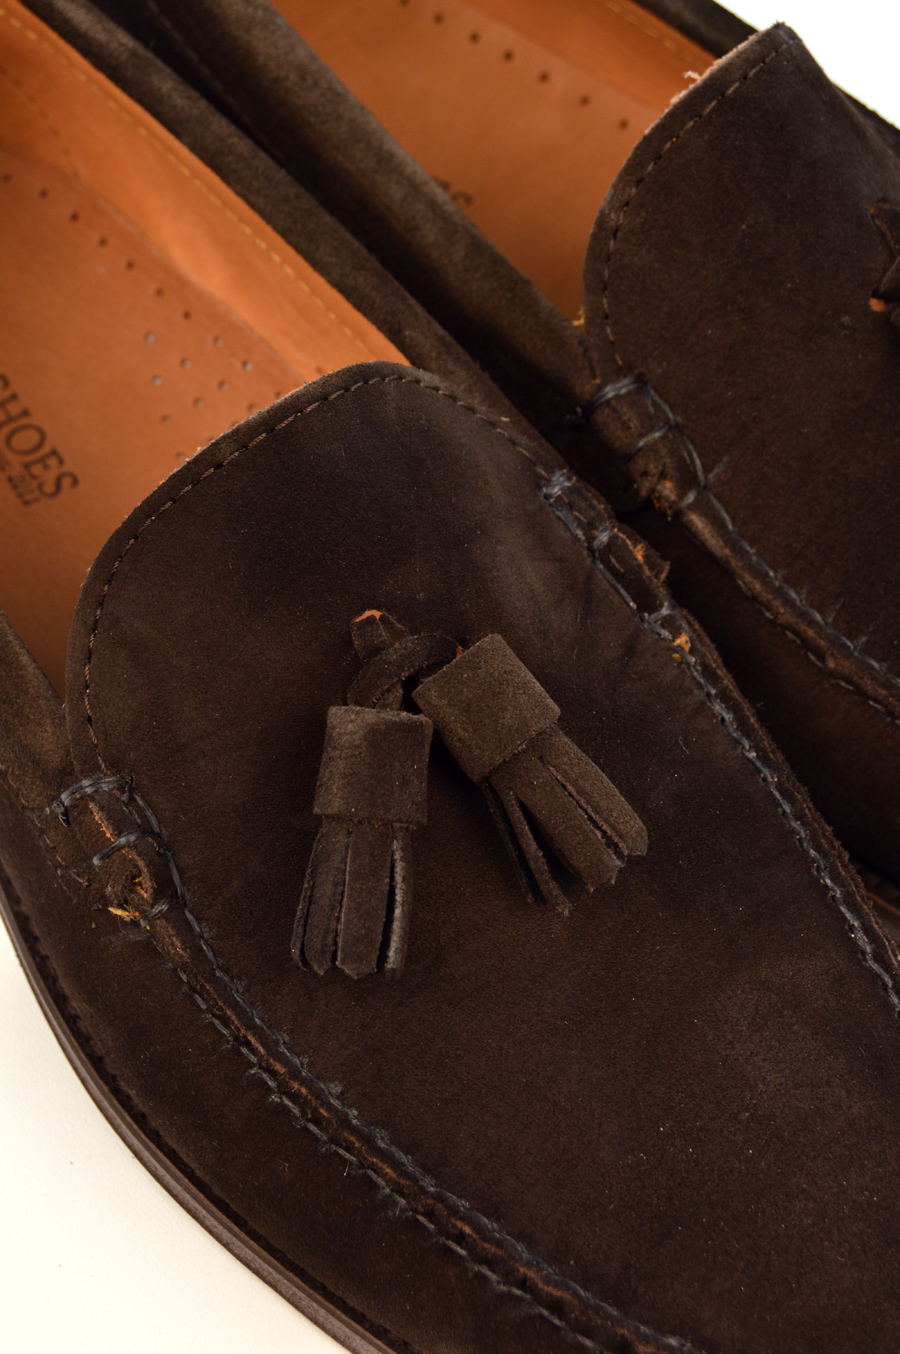 modshoes-dark-brown-suede-tassel-loafers-the-lords-09